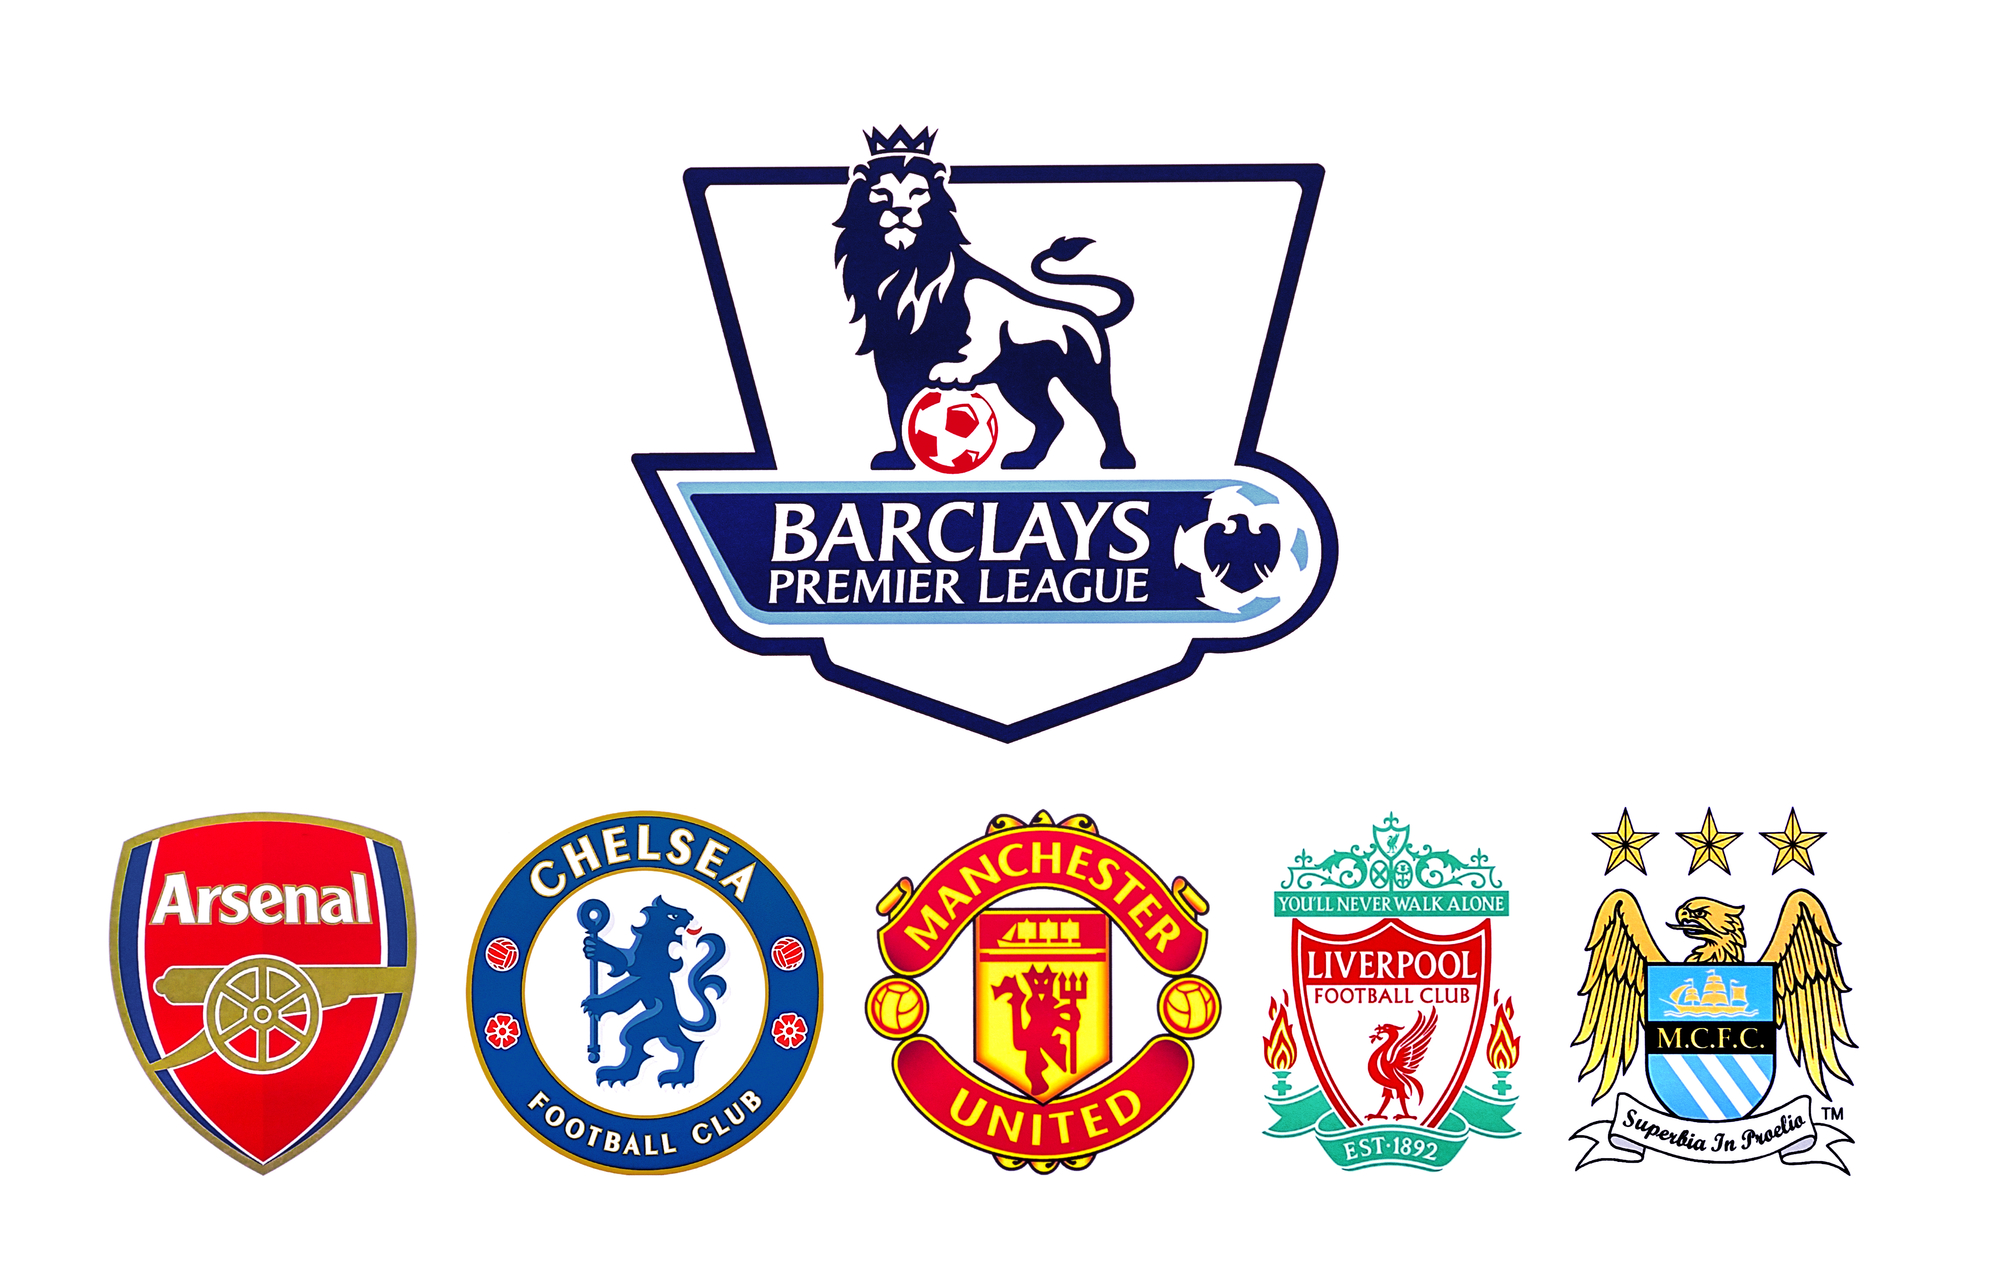 Premier League update on the weeks matches